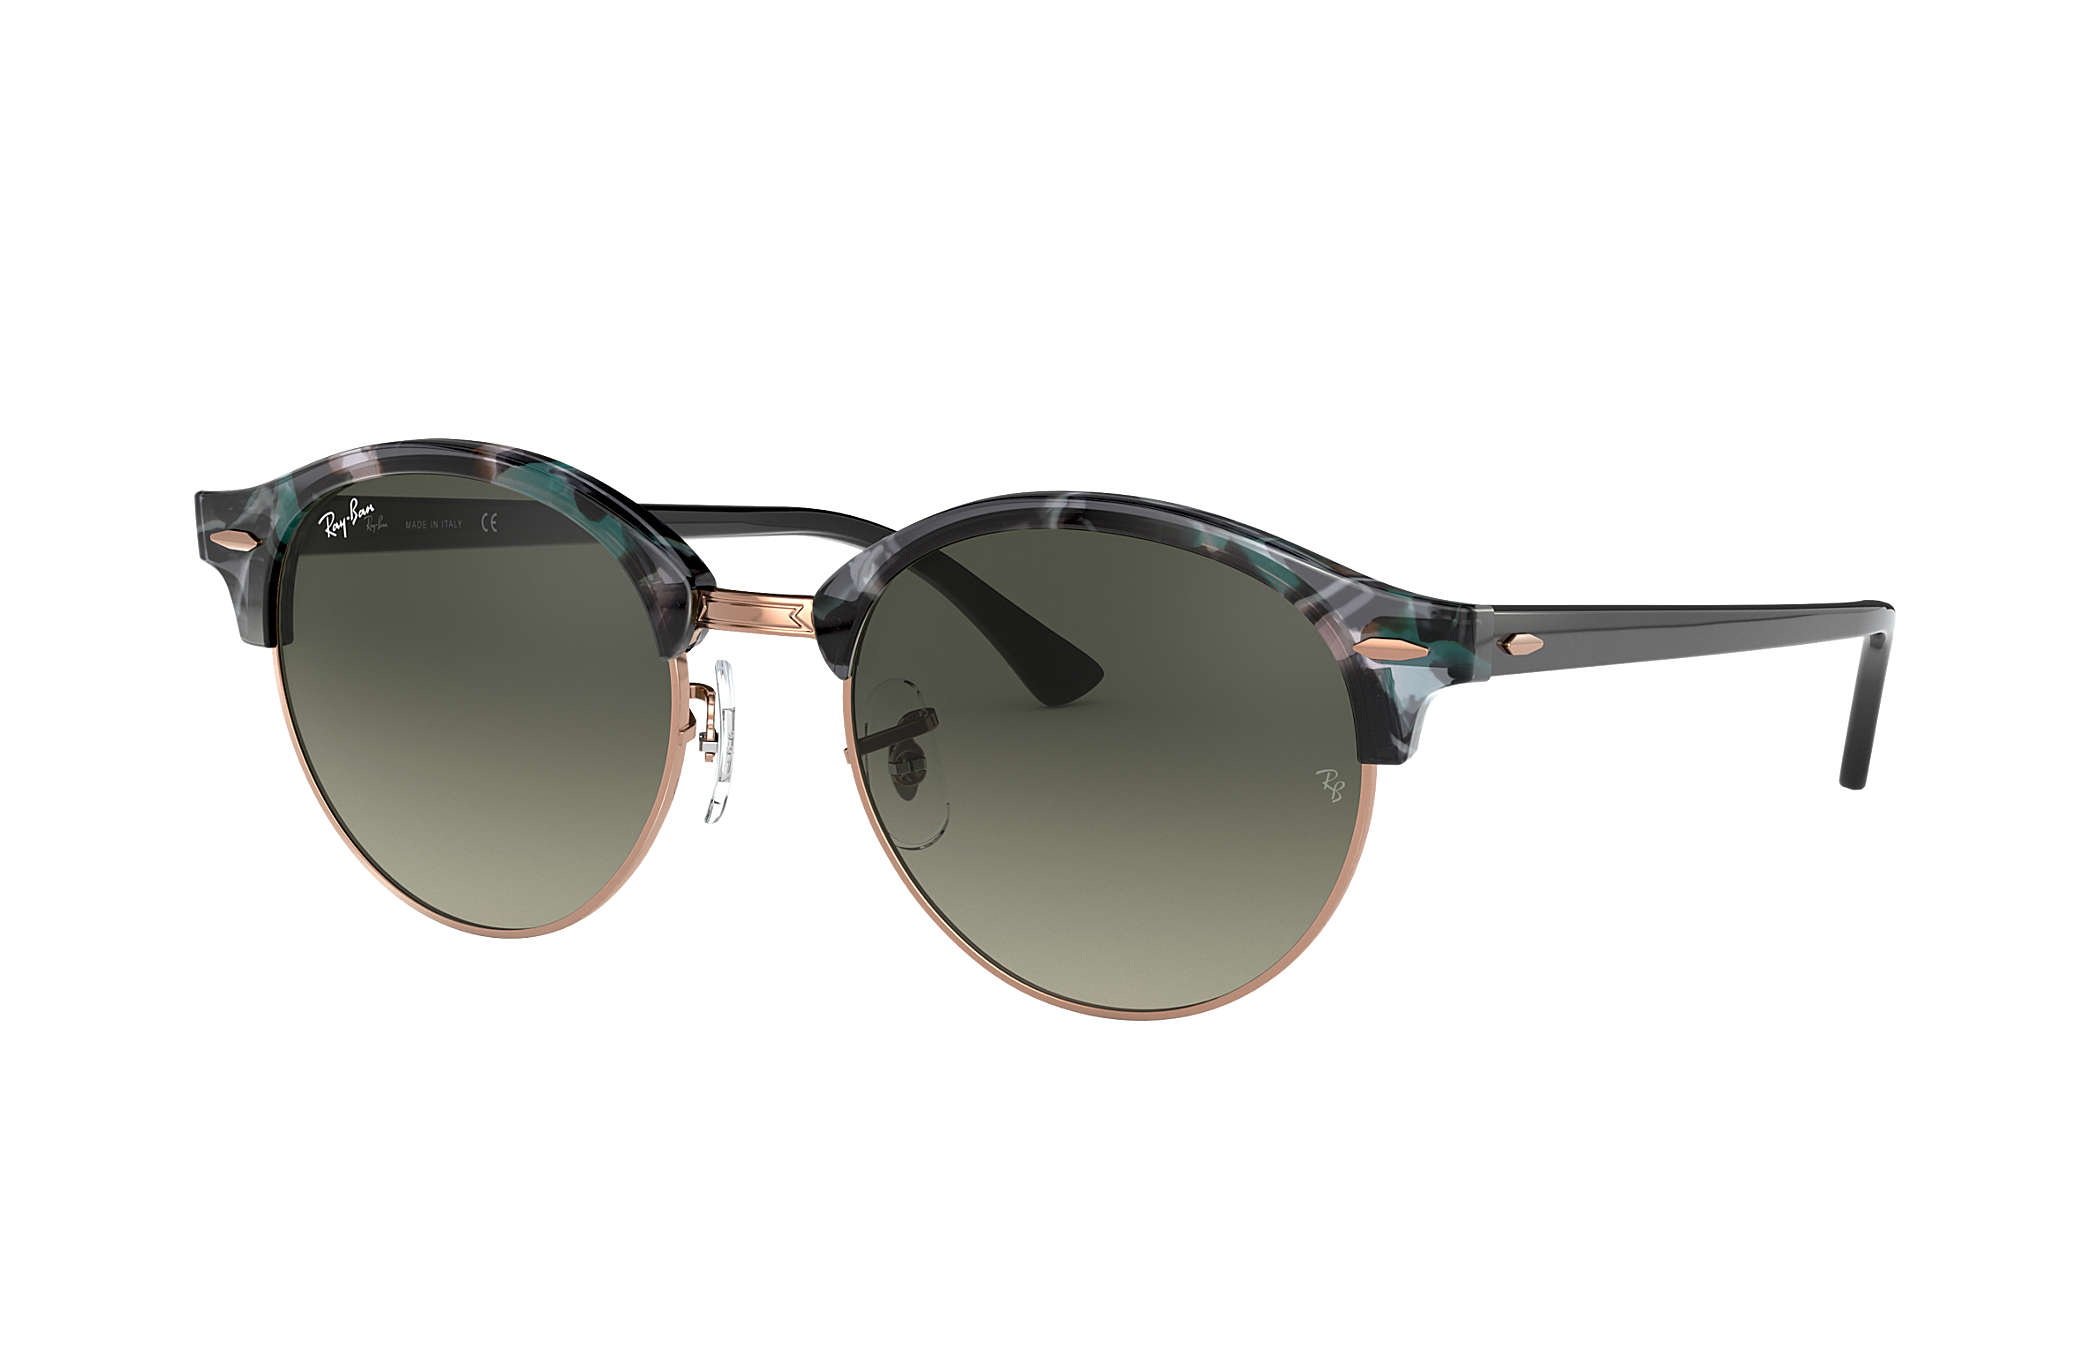 24a7a567652 Ray-Ban Clubround Fleck RB4246 Spotted Grey and Green - Acetate ...